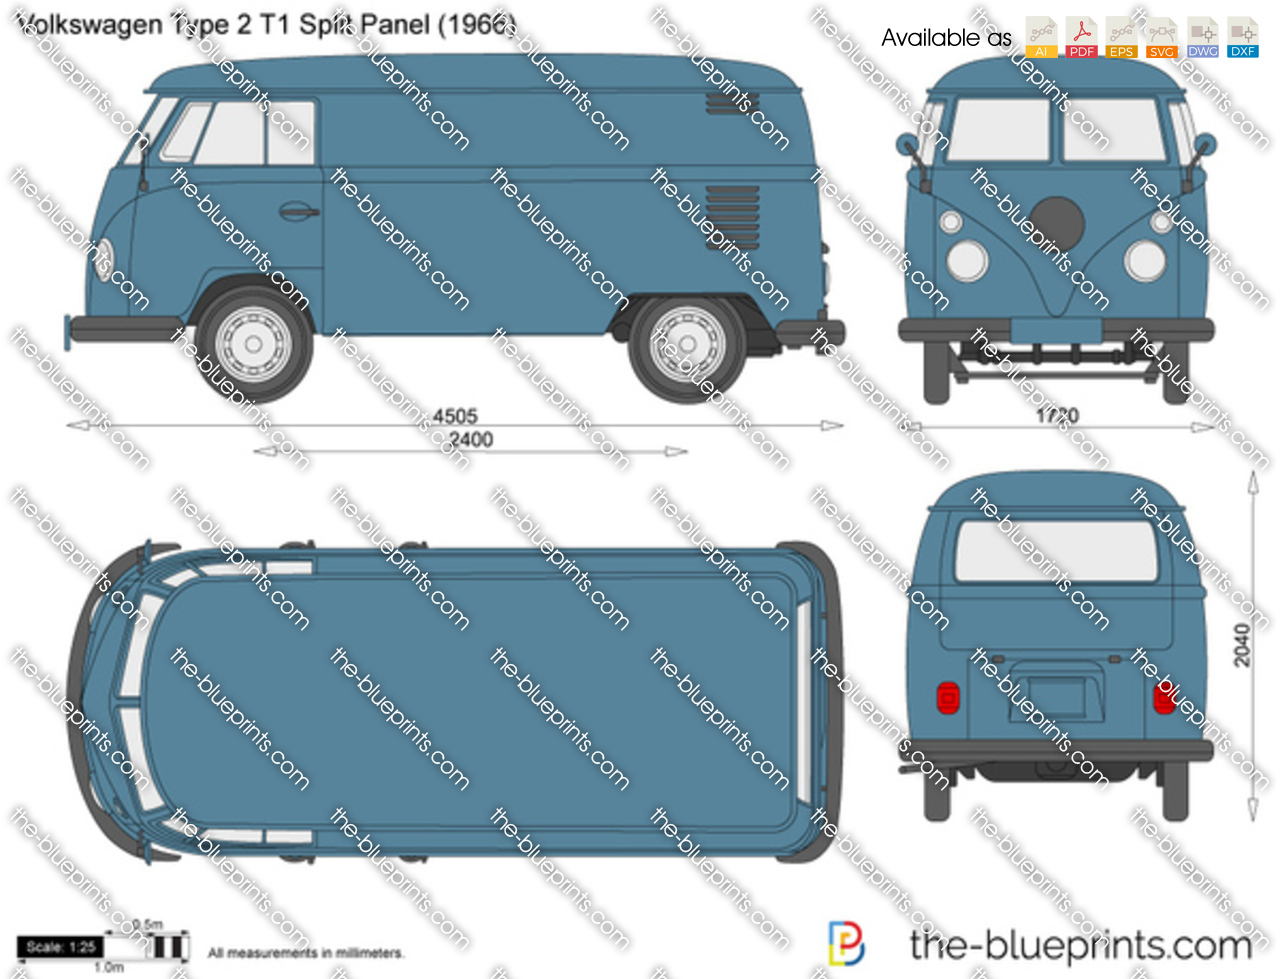 1967 Volkswagen Type 2 T1 Split Panel